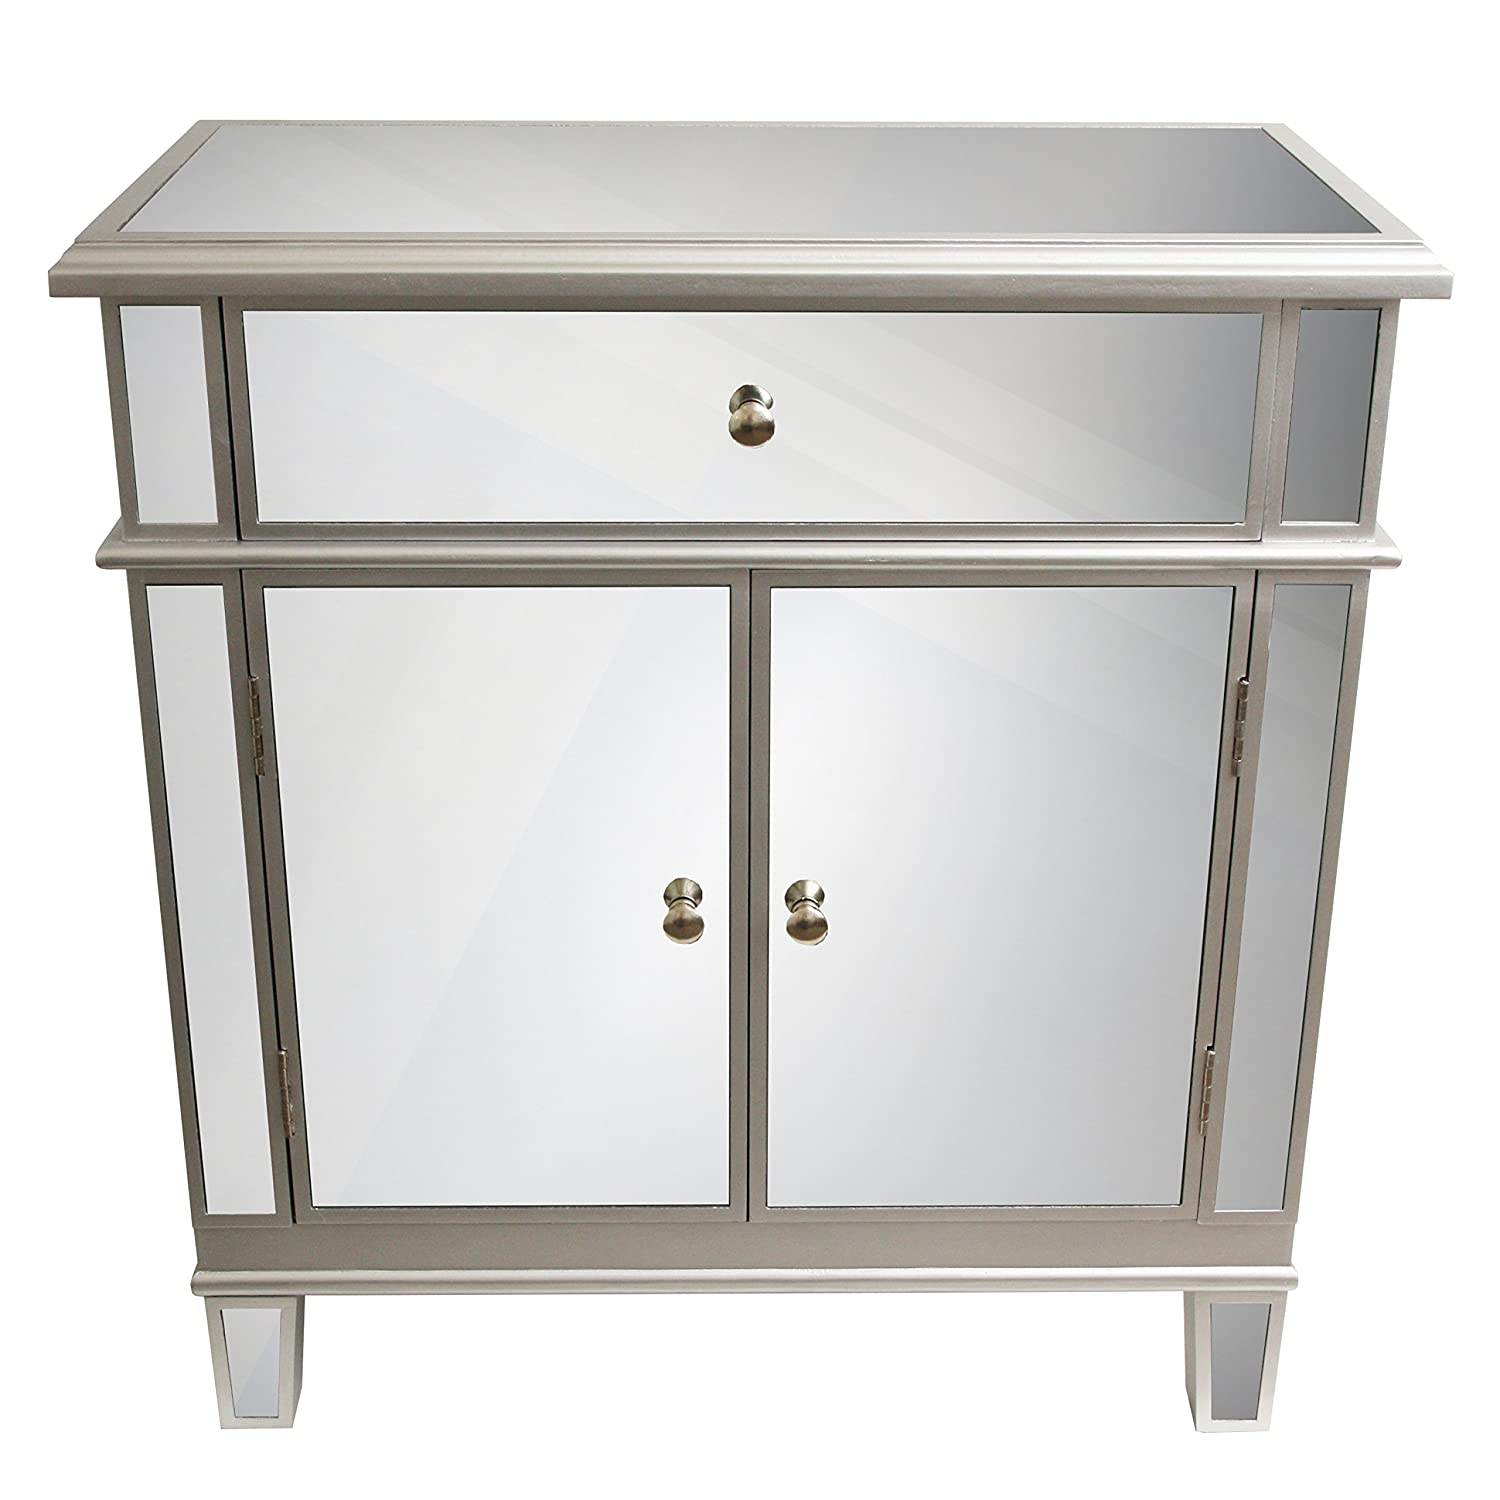 "Amazon.com: Décor Therapy FR1792 Mirrored Chest, Silver Finish, 16"" W x 32""  D x 32"" H: Kitchen & Dining"